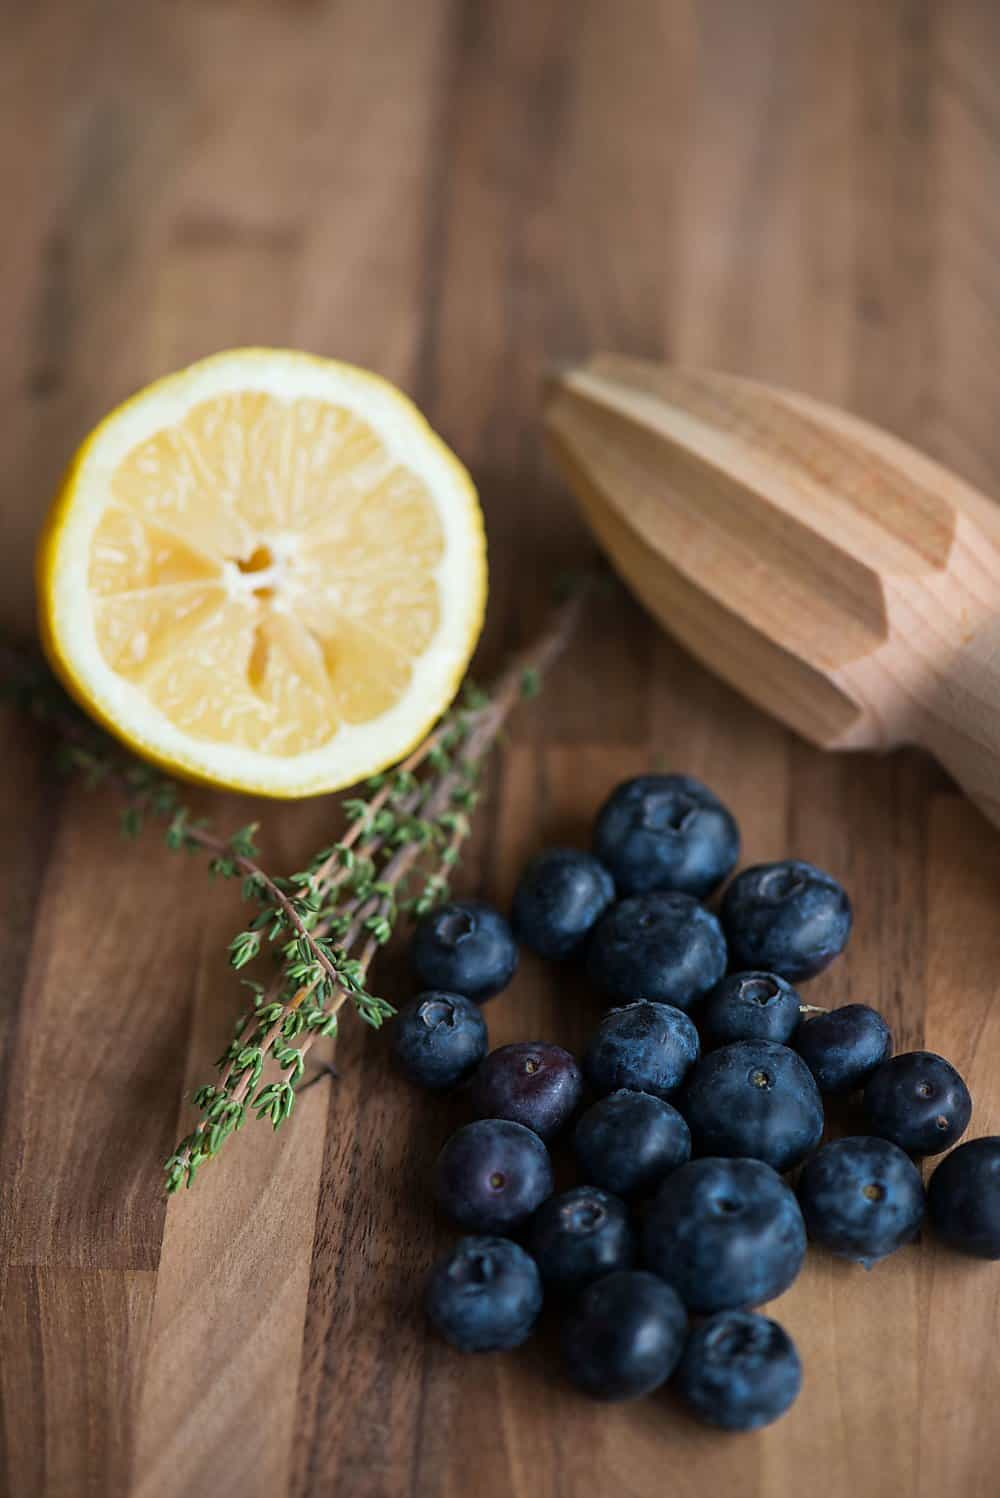 lemon, blueberries, and thyme on a wooden cutting board